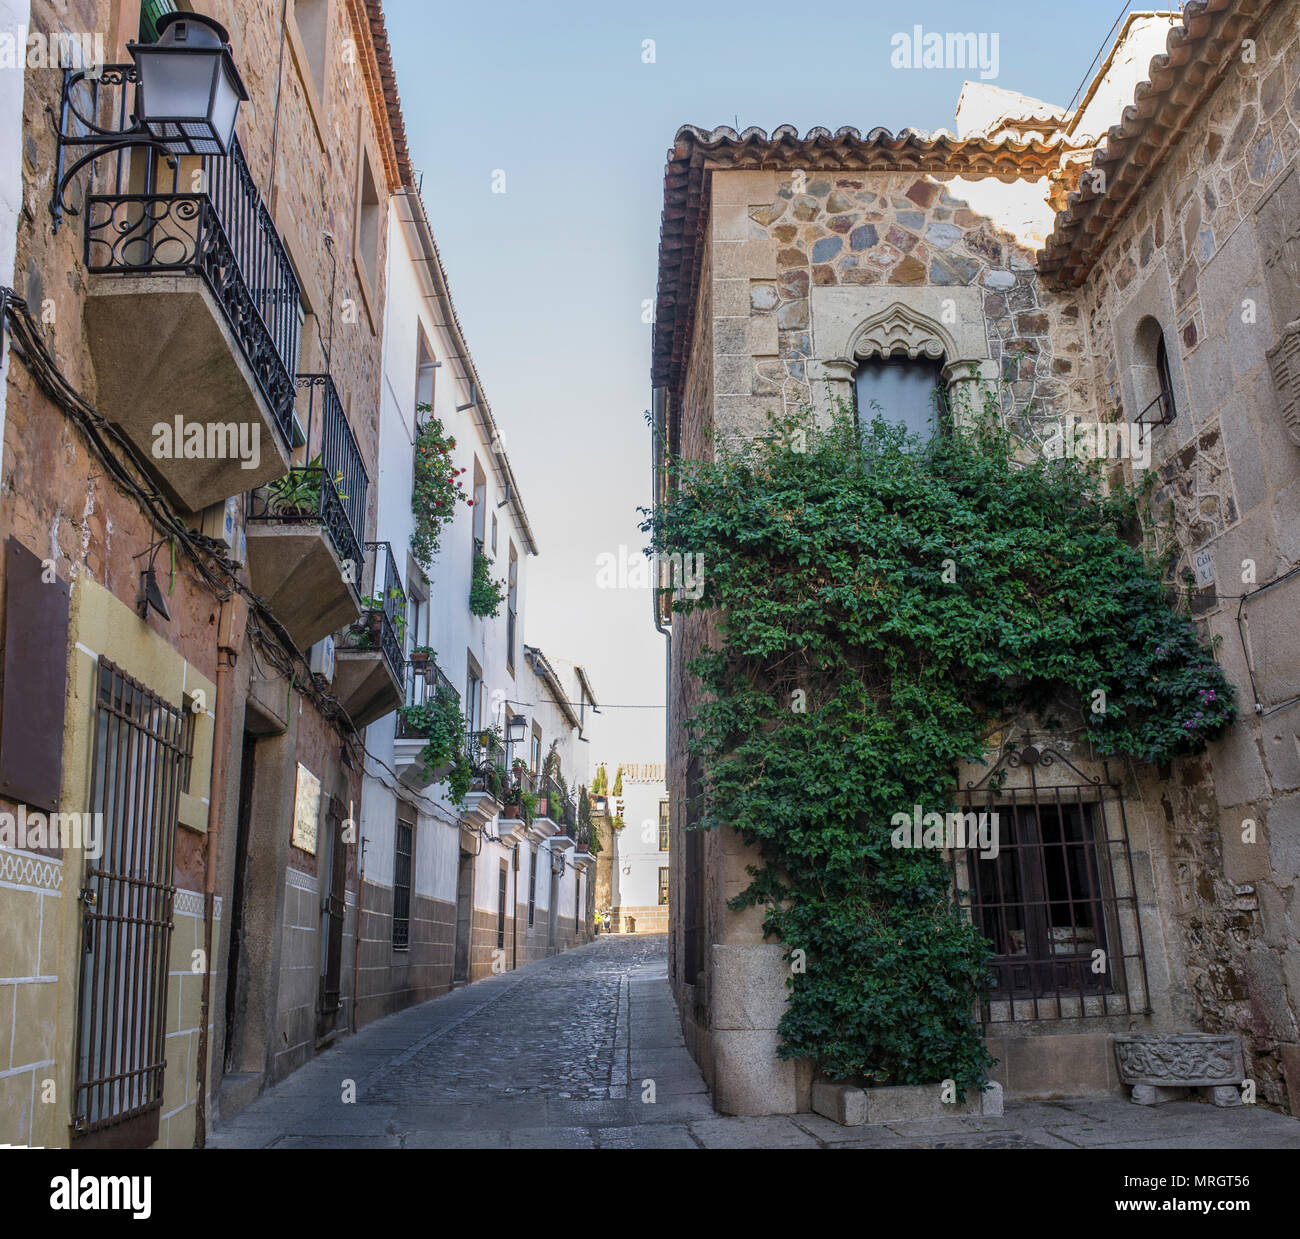 Hospital of Pilgrim Knights Gothic building Caceres historic quarter, Spain - Stock Image